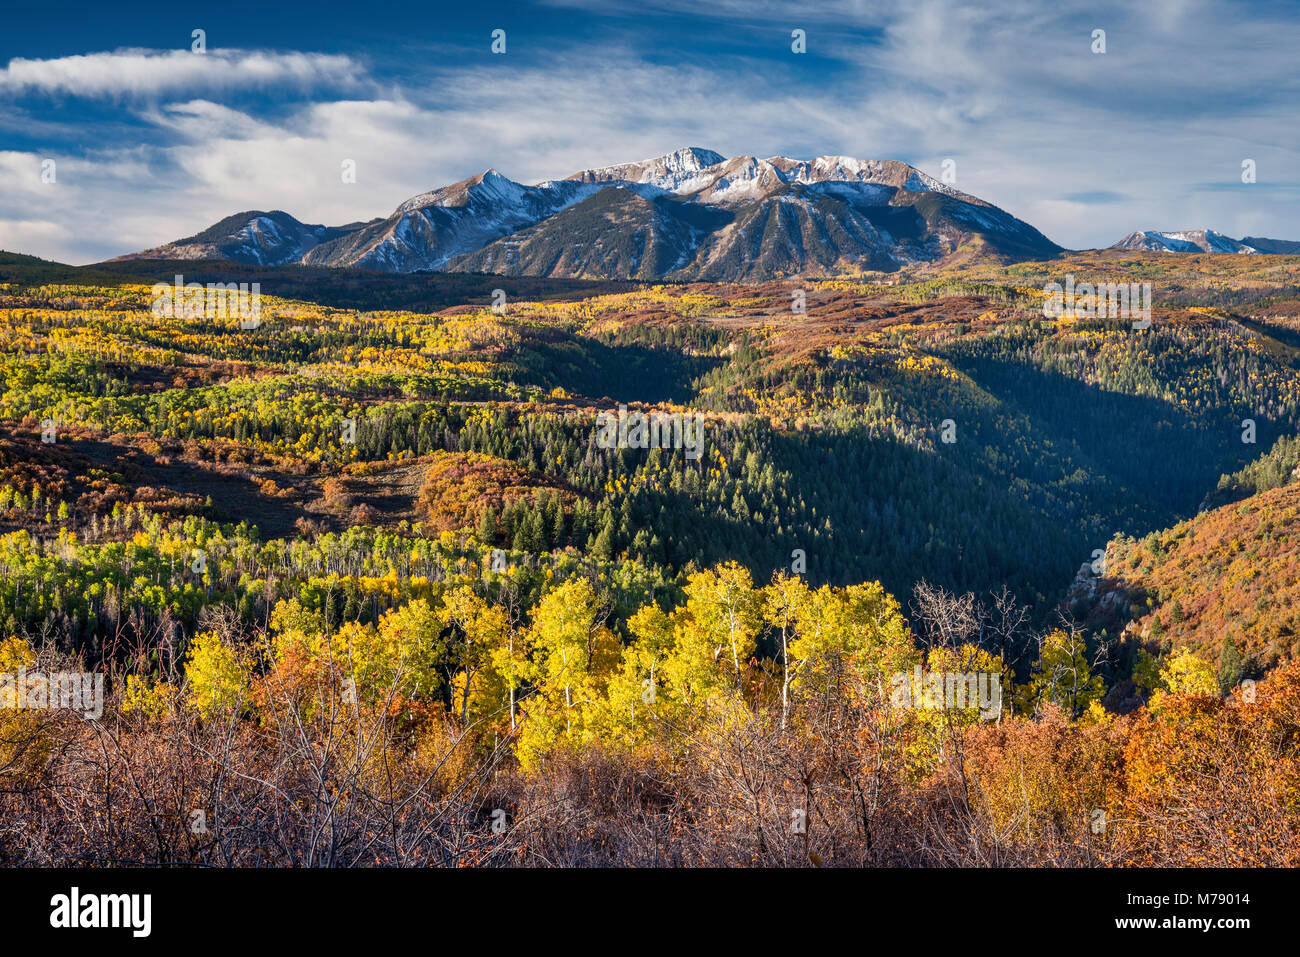 Mount Gunnison, seen from West Elk Loop Scenic Byway, Gunnison National Forest, West Elk Mountains, Rocky Mountains, - Stock Image